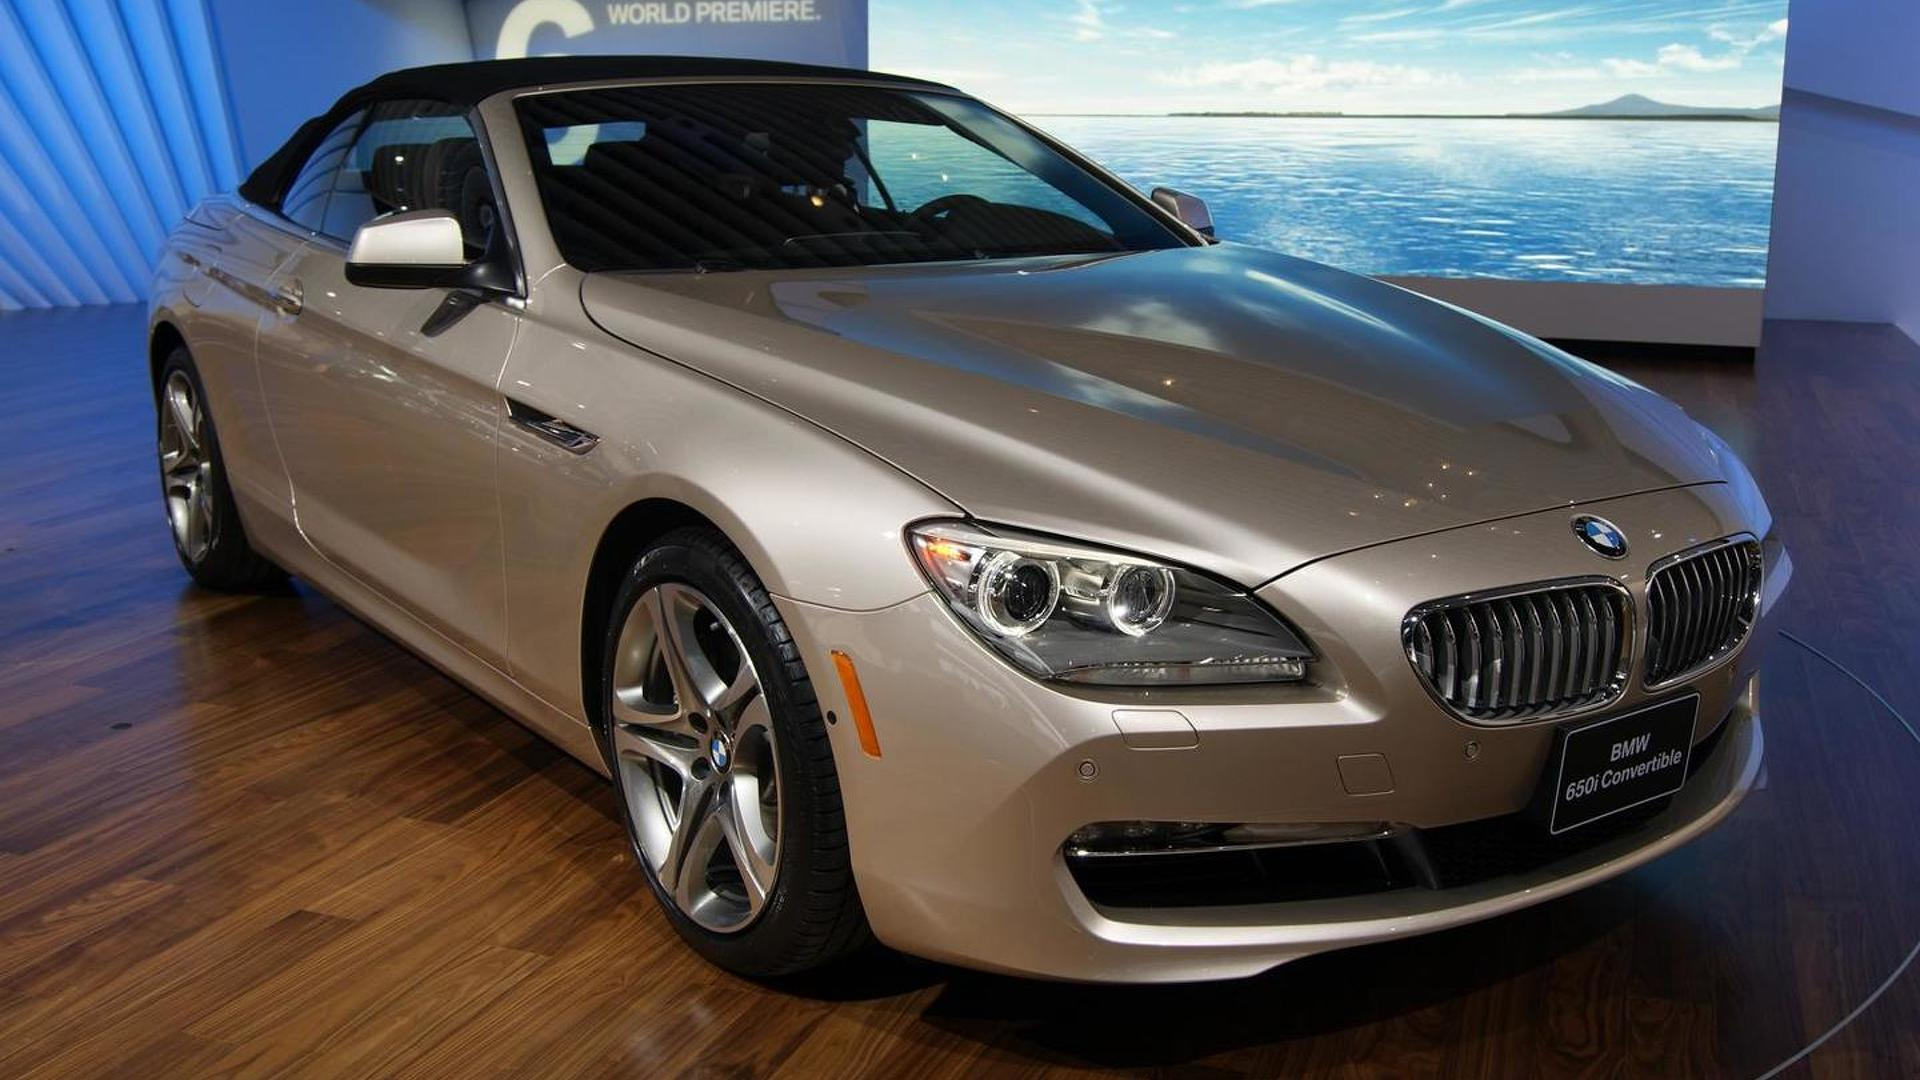 2011 BMW 6-Series Cabrio drops its top in the Motor City